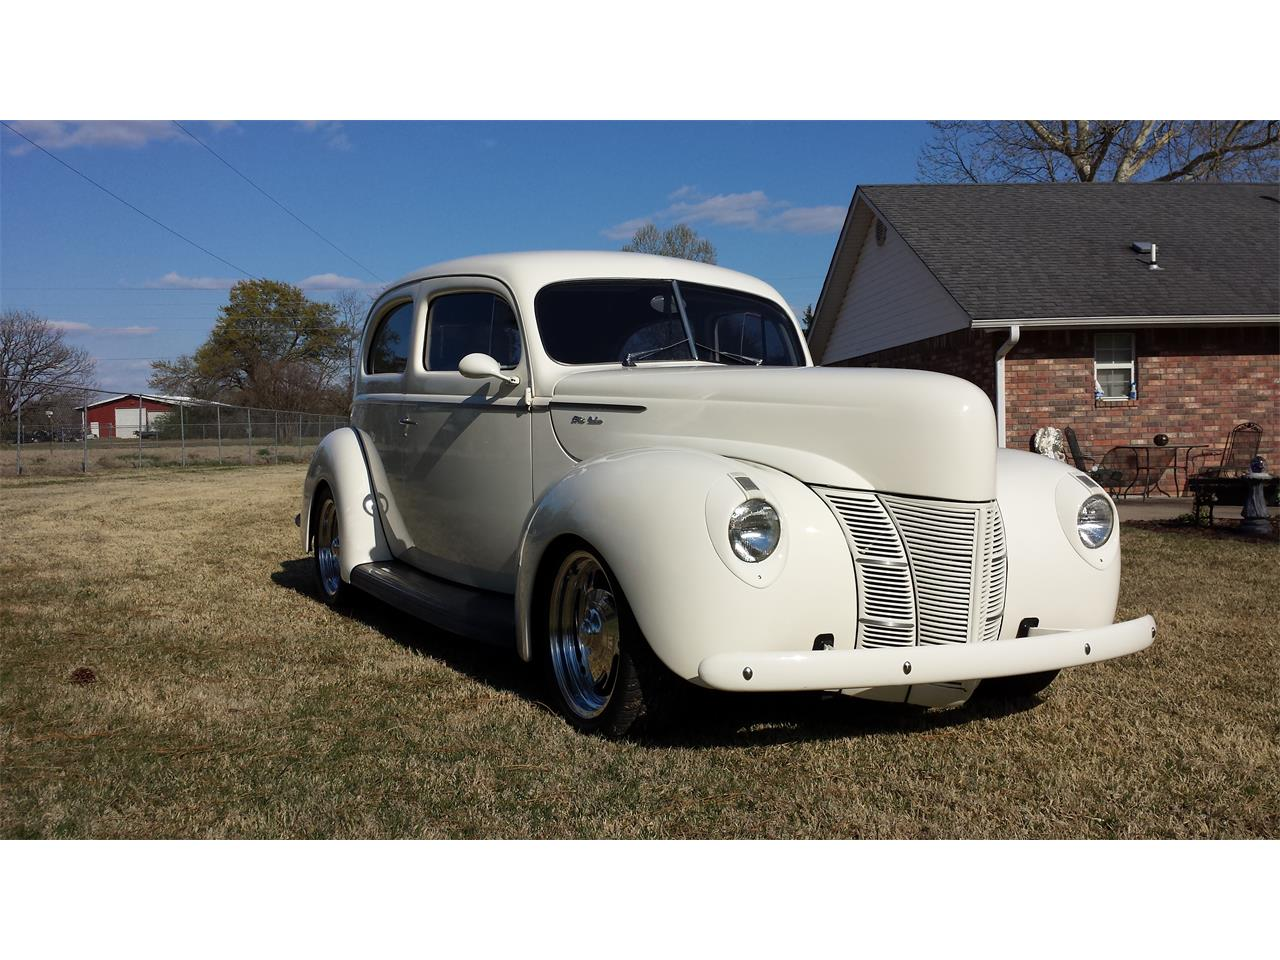 Large Picture of '40 Deluxe located in Okmulgee Oklahoma - $29,500.00 Offered by a Private Seller - HO65